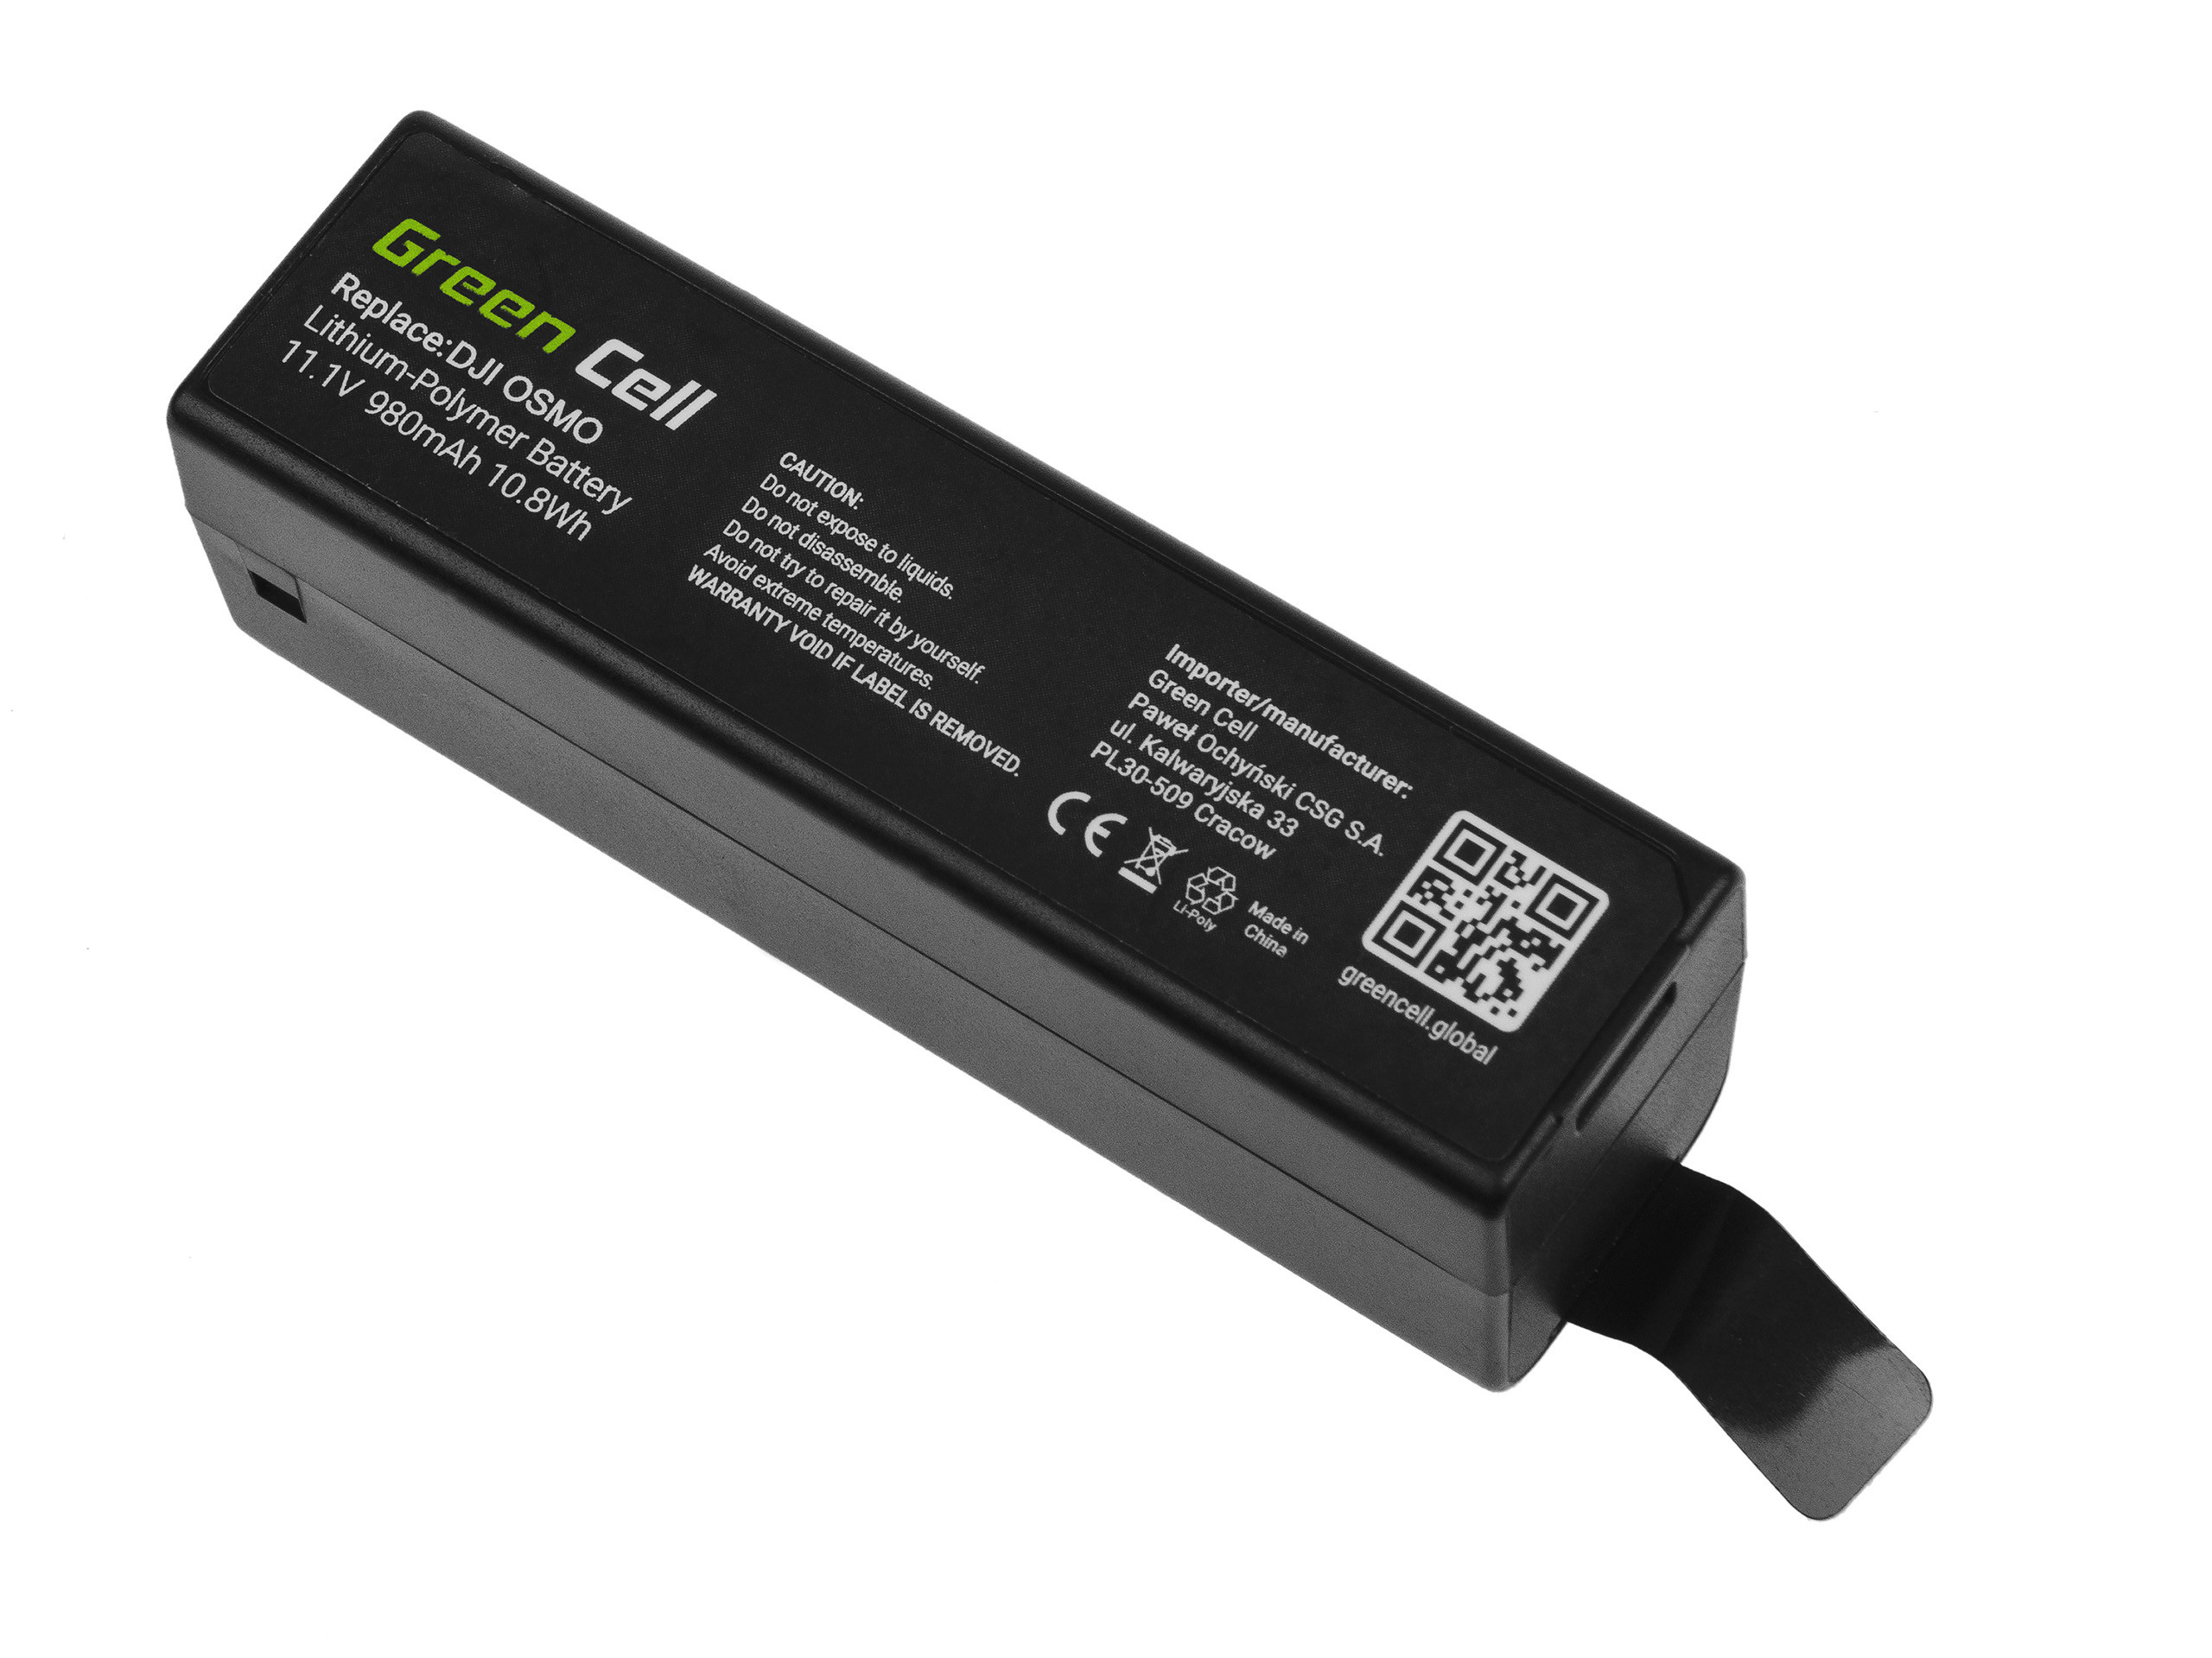 Green Cell Gimbal Battery for DJI Osmo, Osmo+, Osmo Mobile, Osmo Pro, Osmo RAW 11.1V 980mAh 10.8Wh